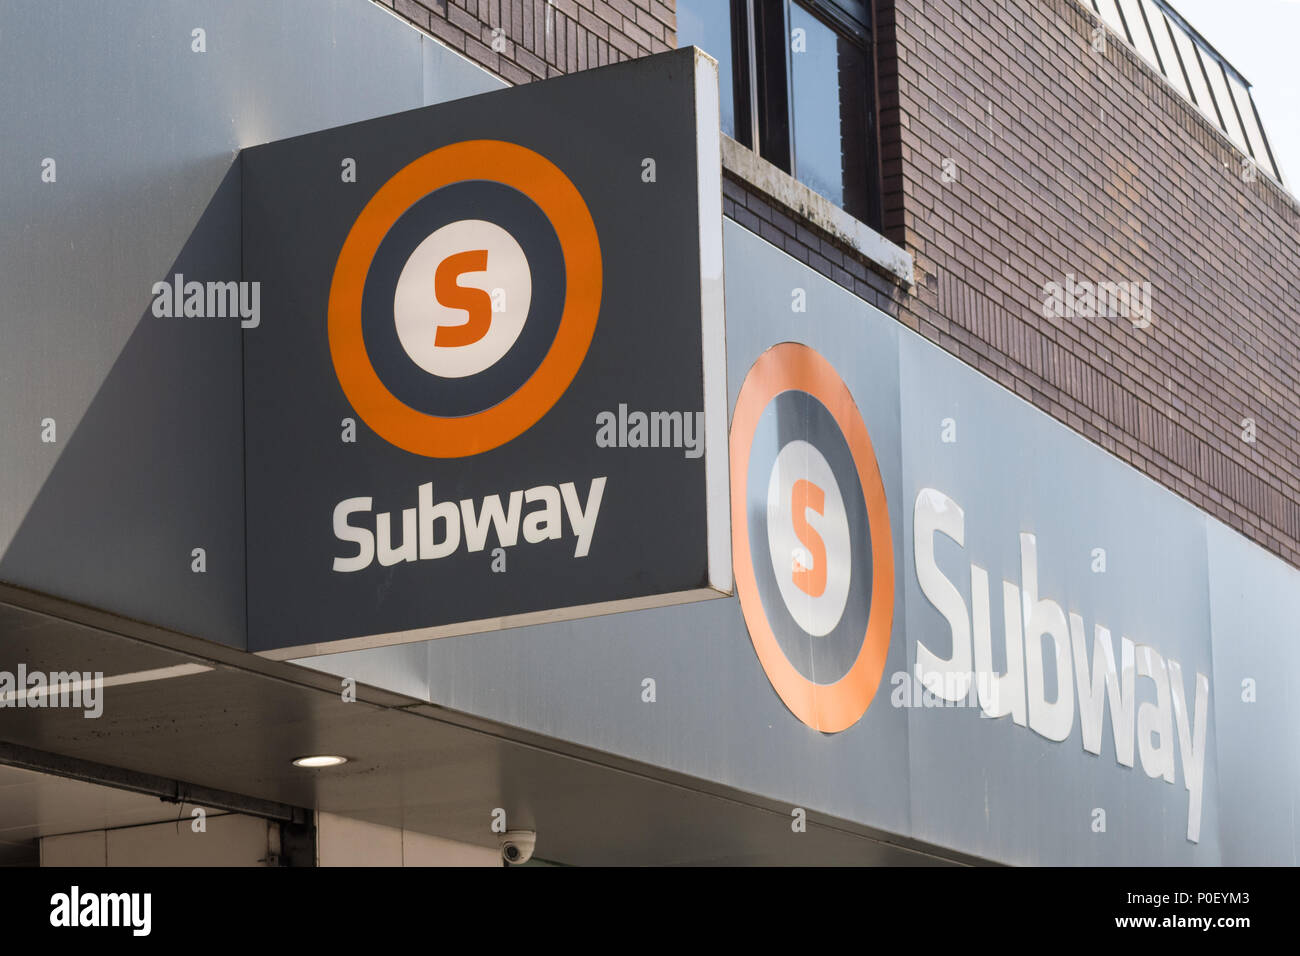 Glasgow subway sign - Hillhead subway, Byres Road, Glasgow, Scotland, UK - Stock Image